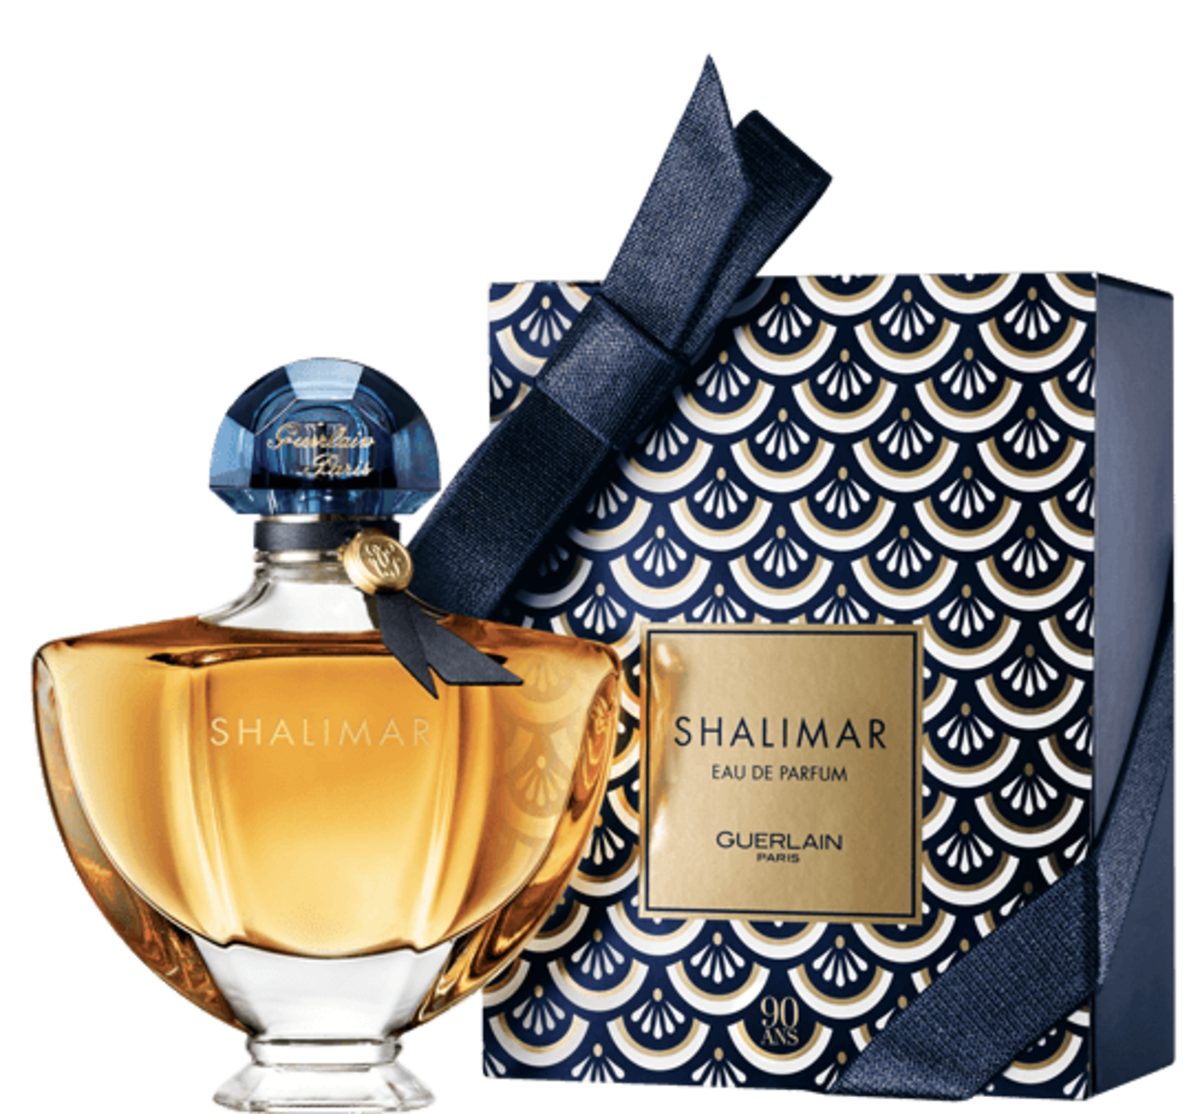 5 Best Guerlain Perfumes to Buy in France